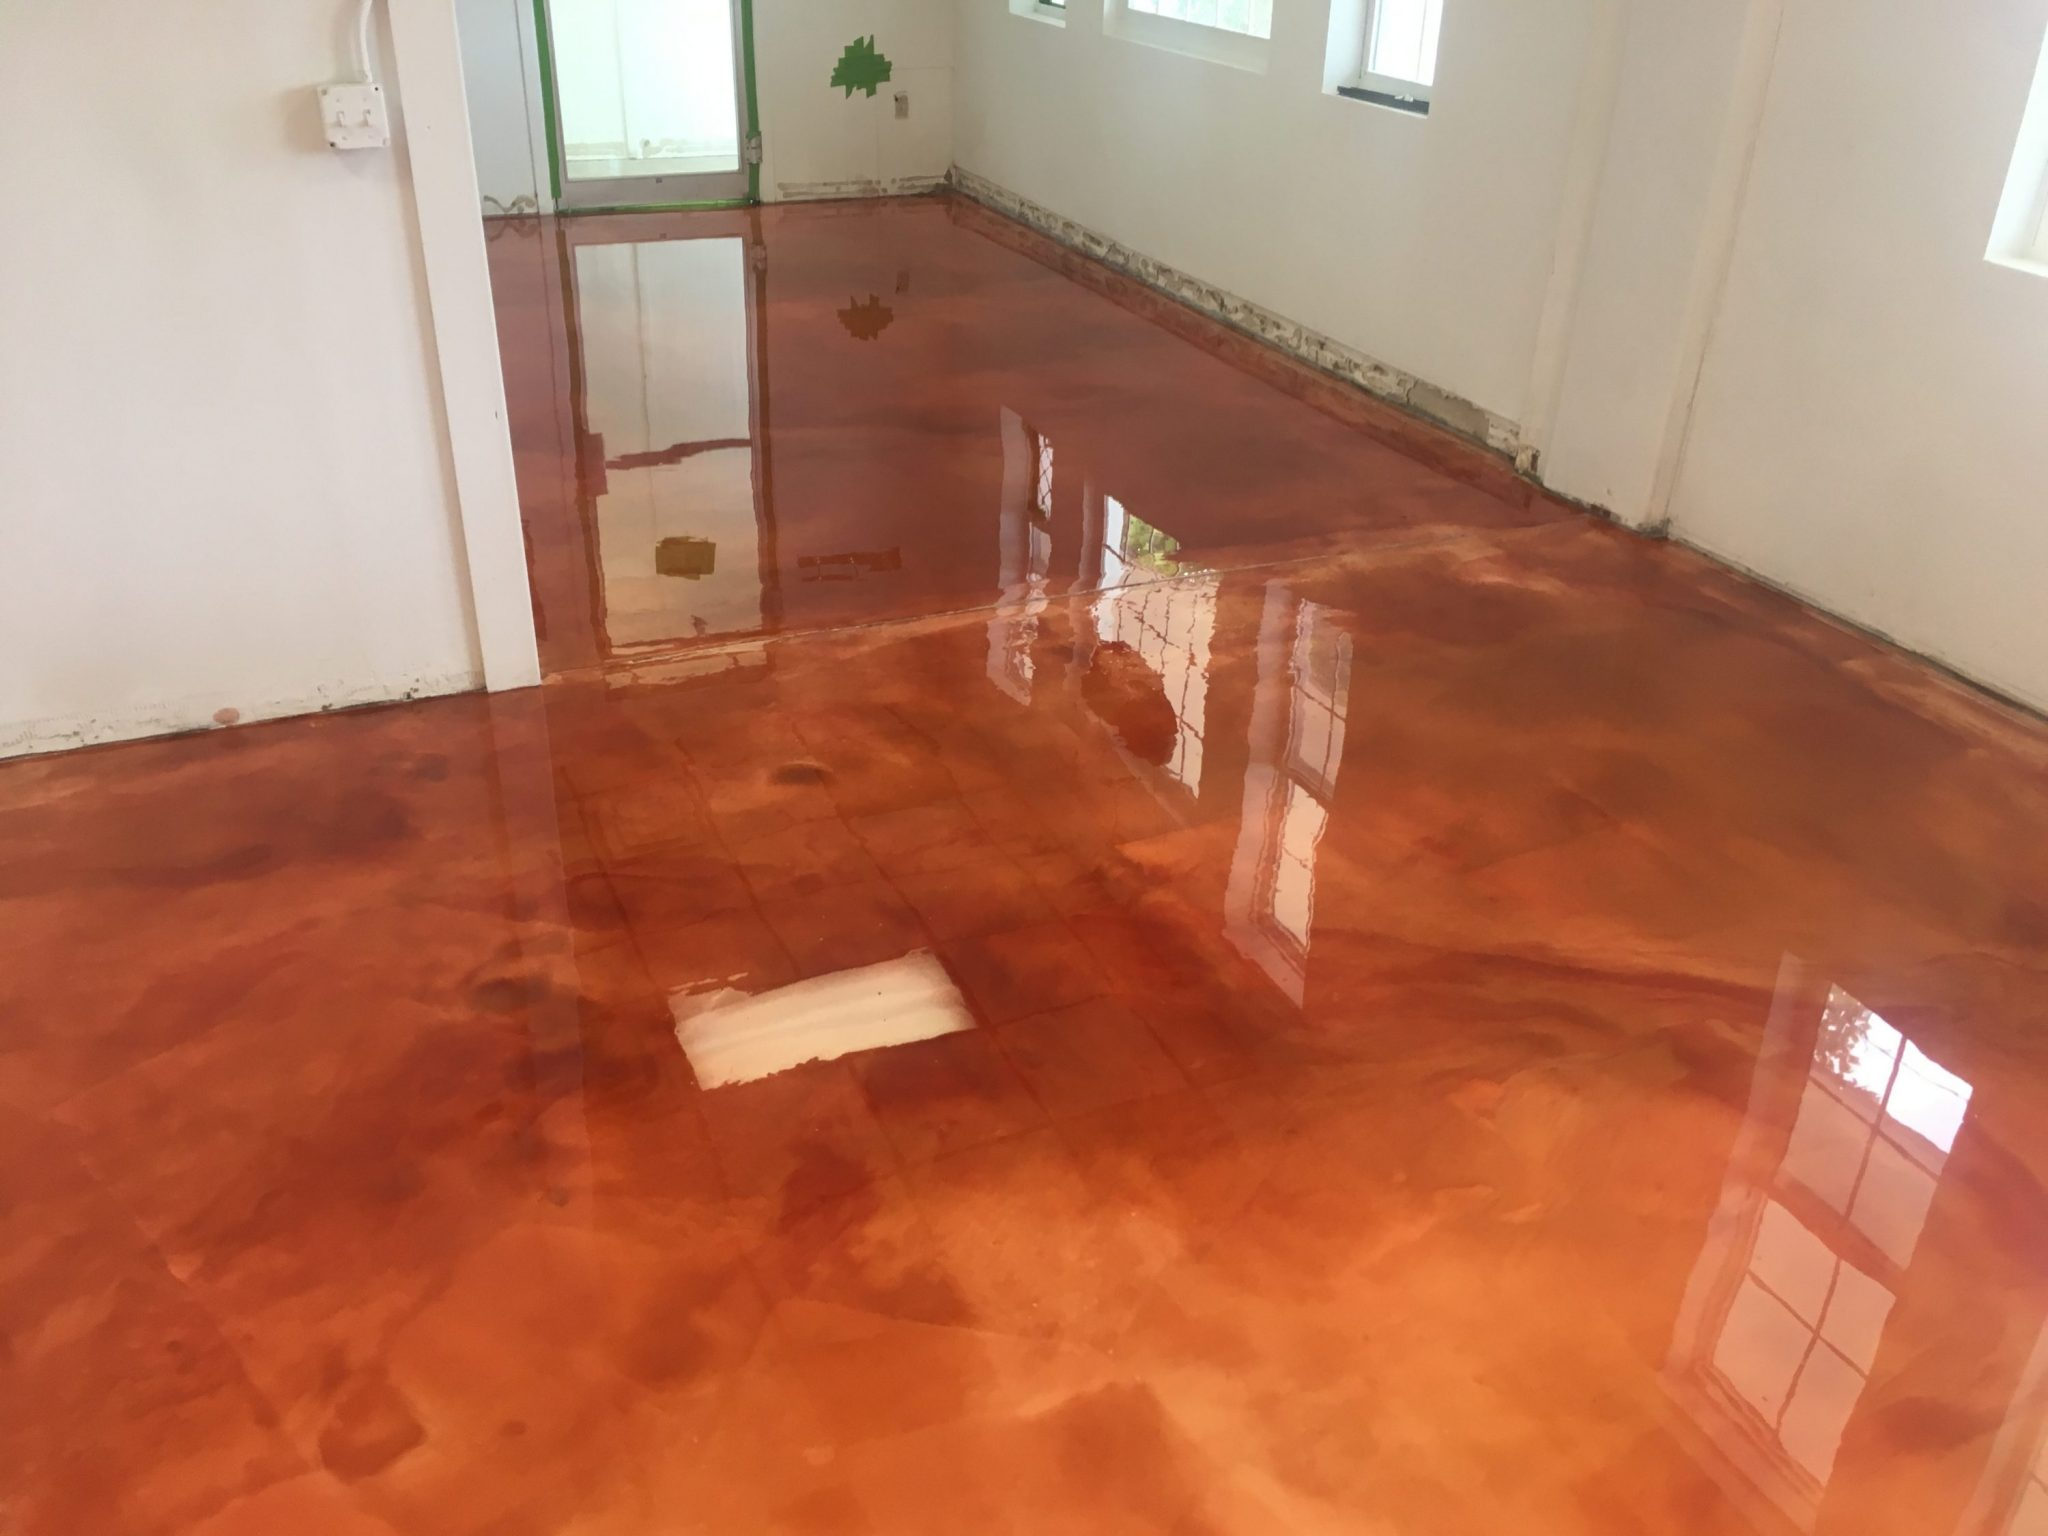 metallic 3d floor setting a new trend in 2017 surecrete products changes the flooring industry. Black Bedroom Furniture Sets. Home Design Ideas